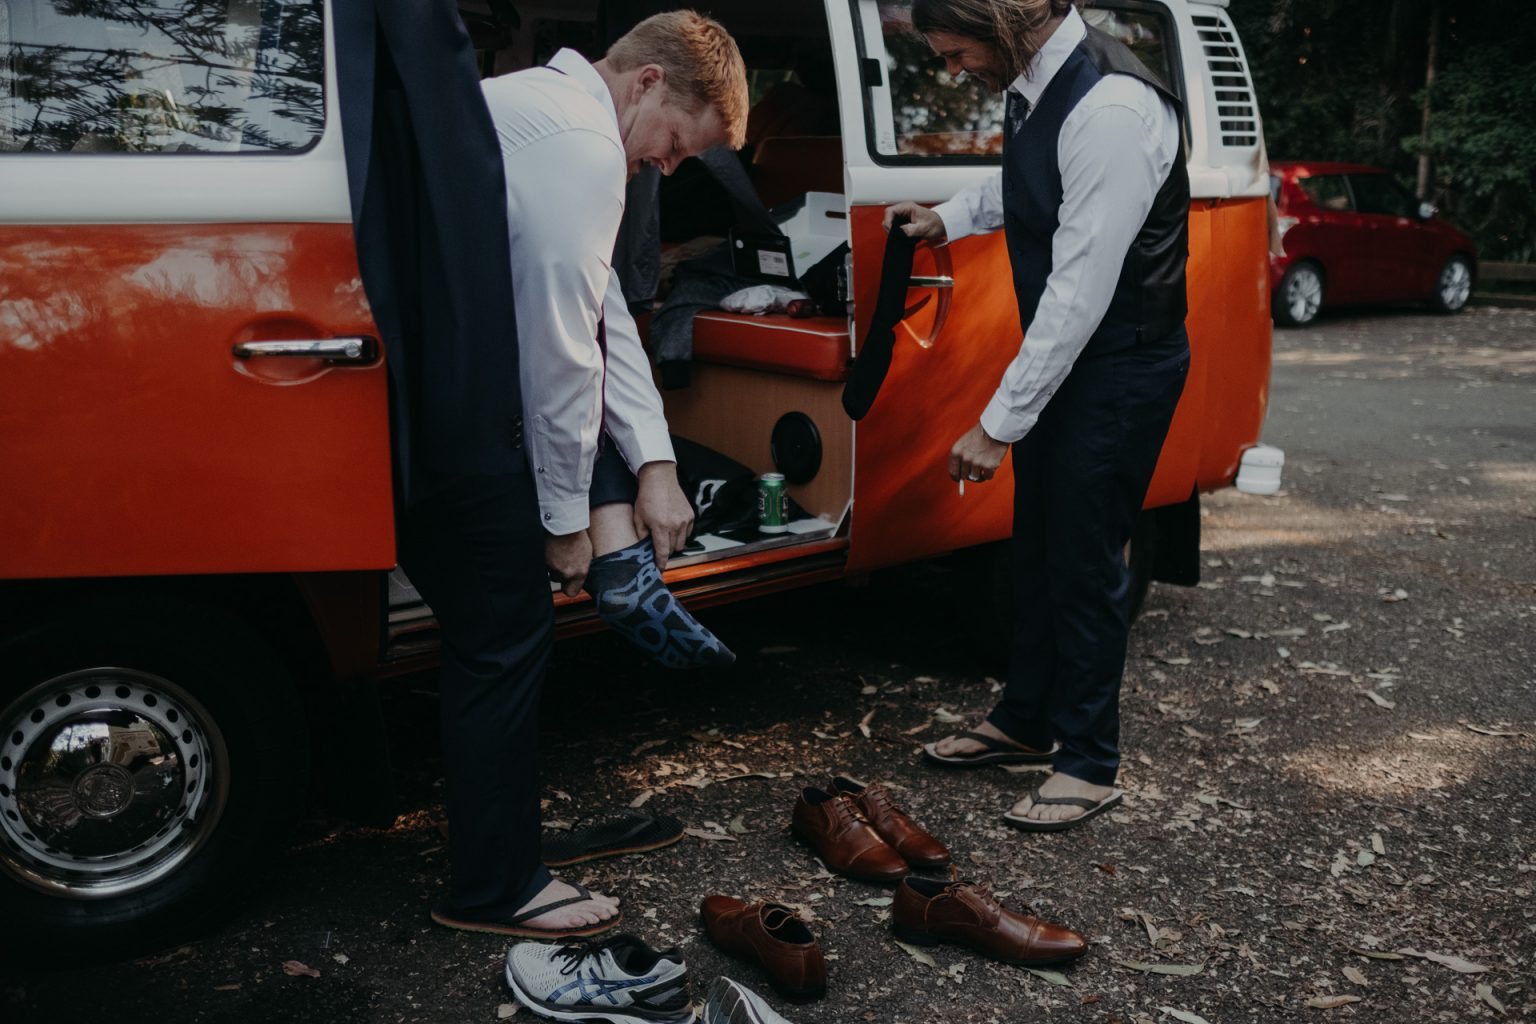 groom putting on shoes in kombi